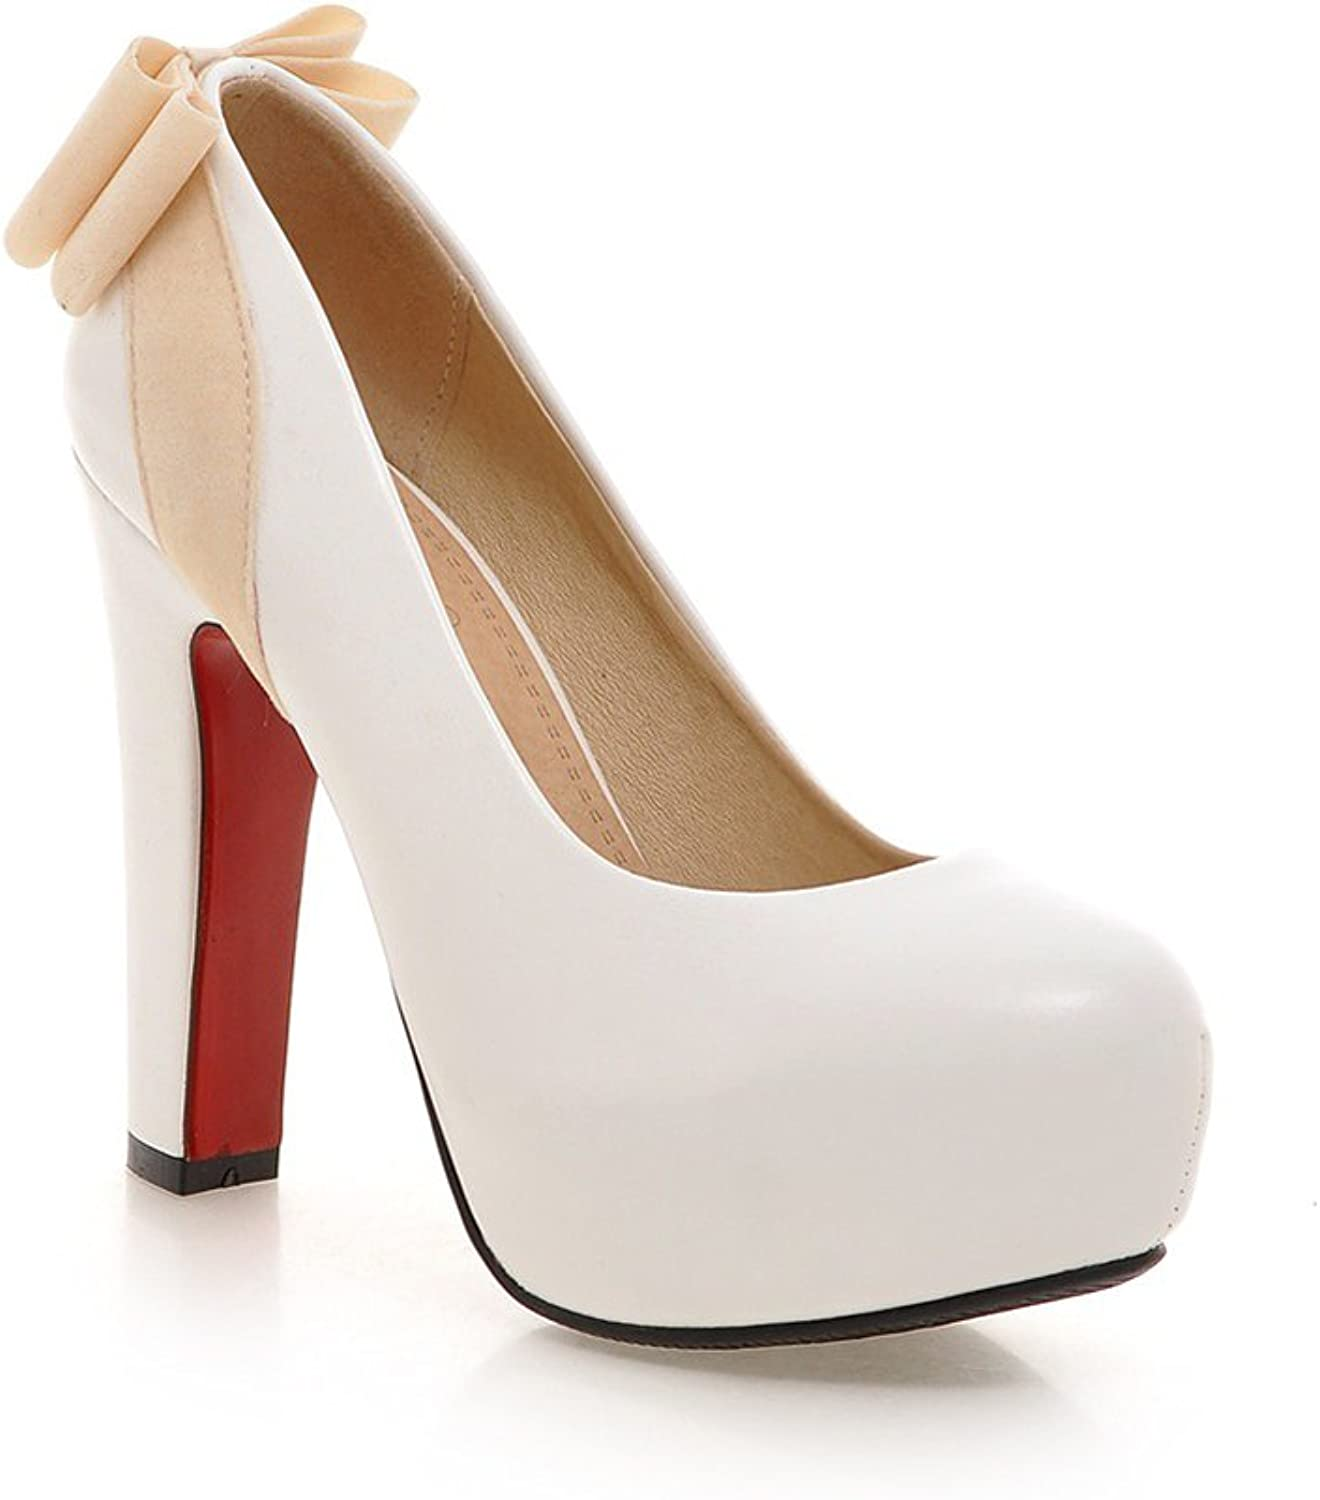 Lucksender Womens Round Closed Toe High Heel Patent Leather Pumps shoes